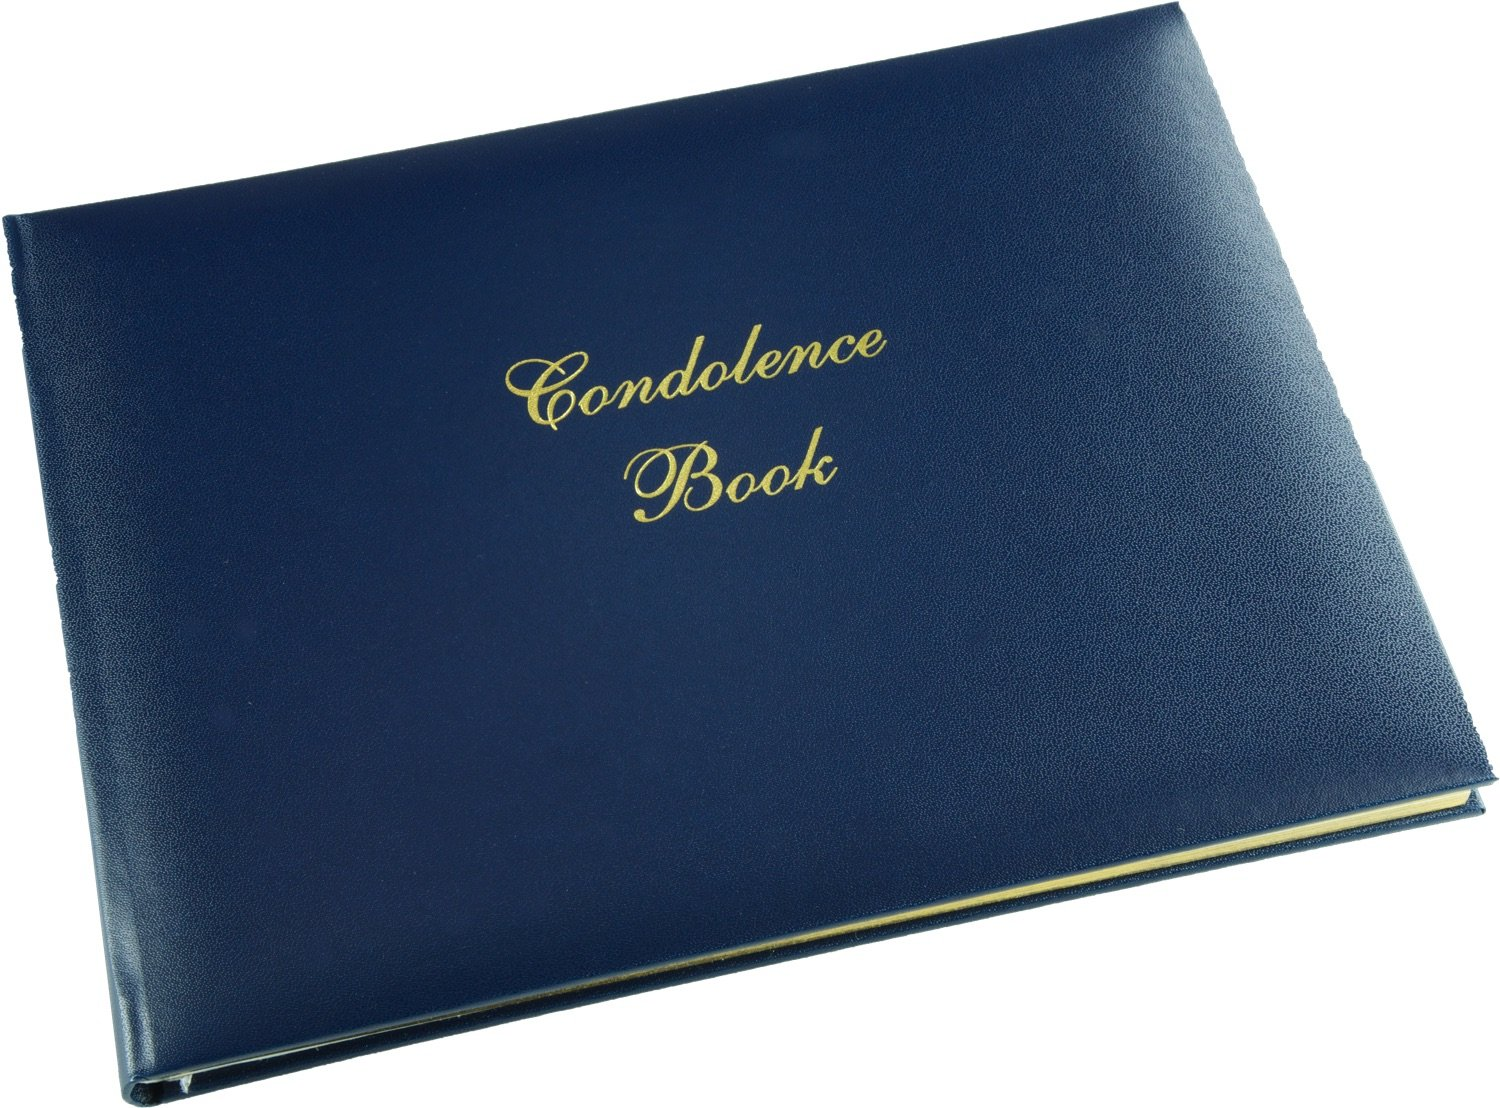 Esposti Condolence Book - Blue - Funeral Guest Book - Memorial Book - Presentation Boxed - (LARGE SIZE - Width 10.5 inch - Height 7.6 inch - Depth 0.6 inch)